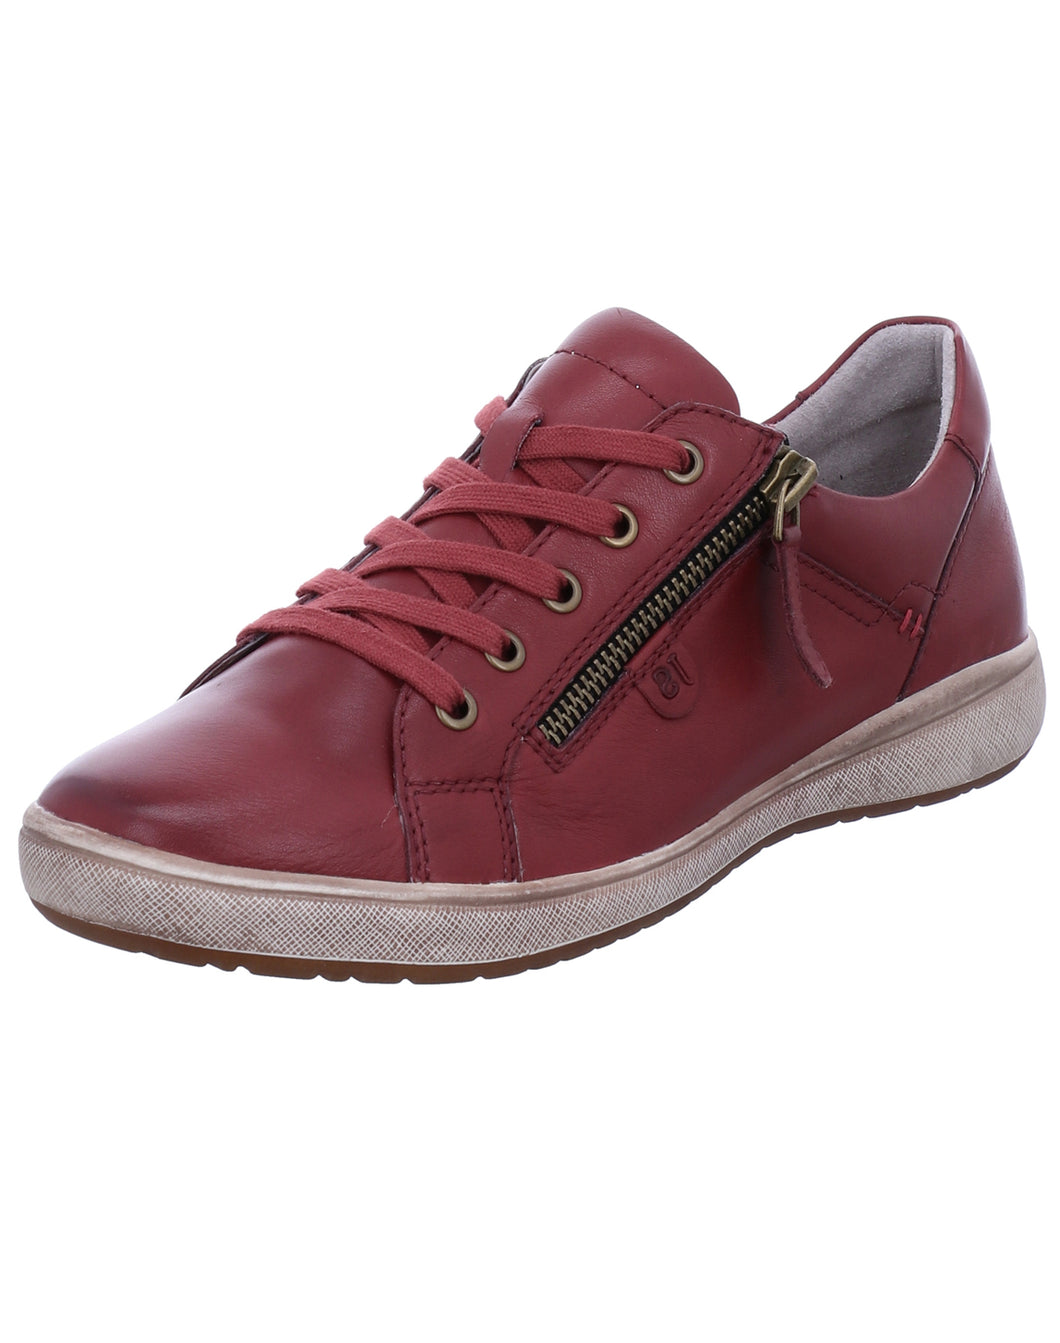 JOSEF SEIBEL 67712 CAREN 12 BORDO